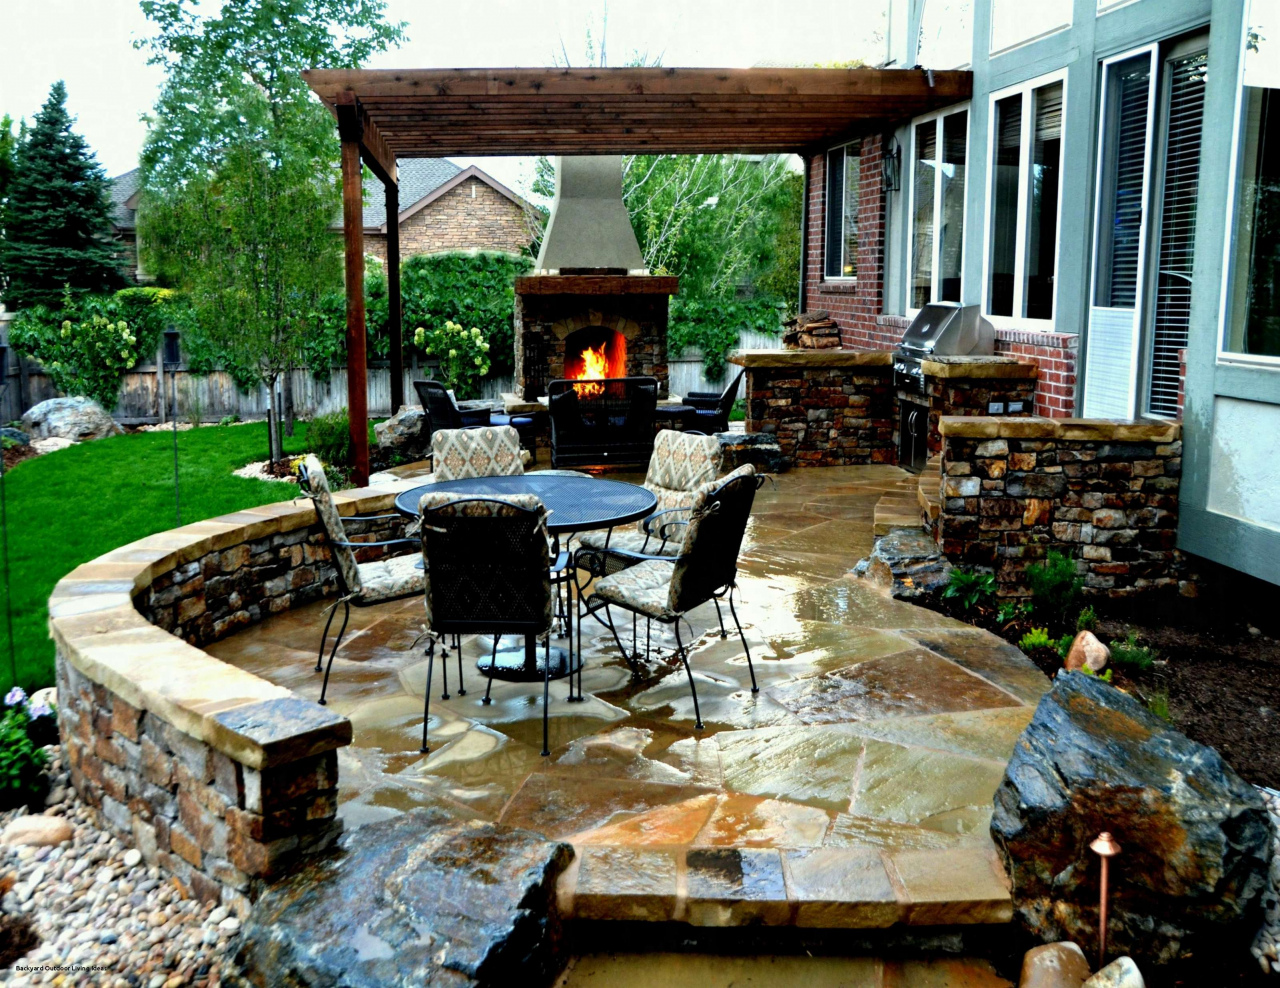 flagstone patio rattan garten inspirierend outdoor furniture sale near me awesome durch flagstone patio